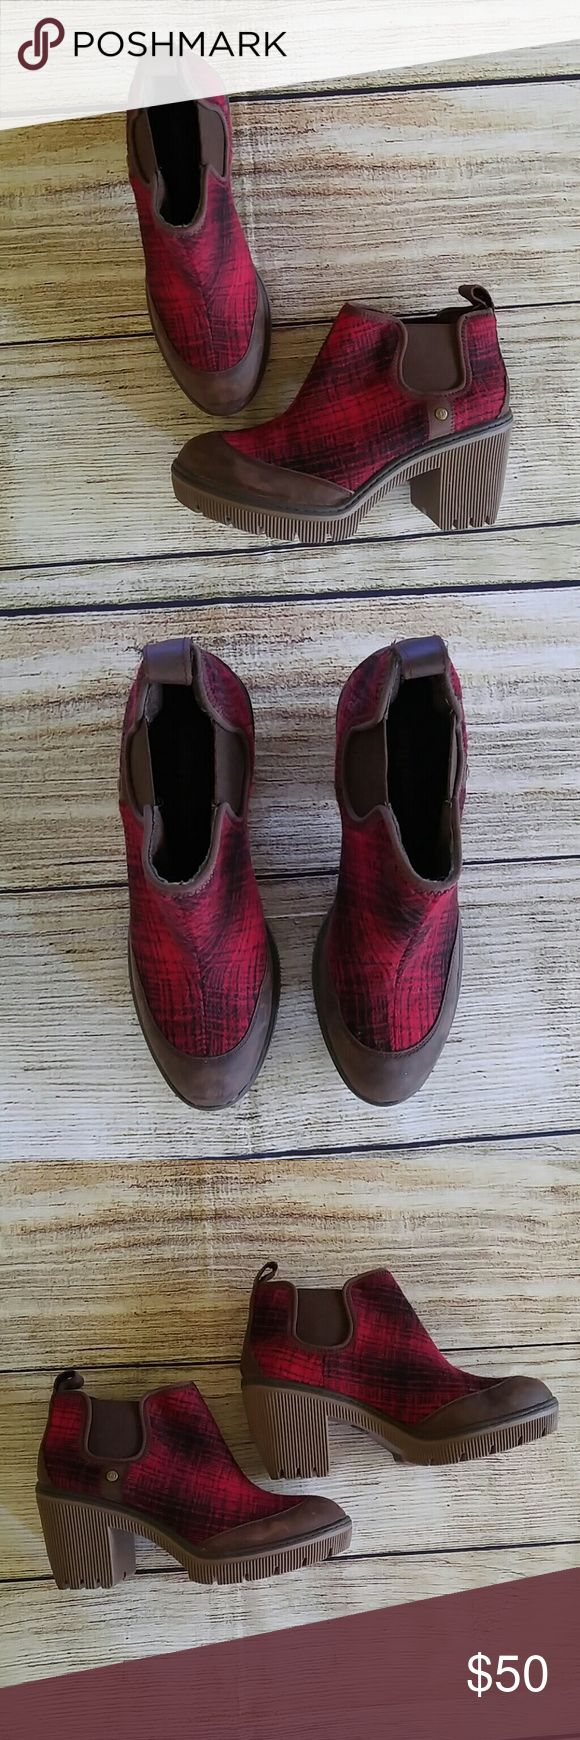 Caterpillar Women's Plaid Red Chunky Ankle Boots 7 Caterpillar T-1130 Women's Plaid Red Chunky Ankle Boots Size 7. Gently used. No rips or stains. Booties come from smoke free home. Heel: 3 inches Sole Length: 9 inches Caterpillar Shoes Ankle Boots & Booties